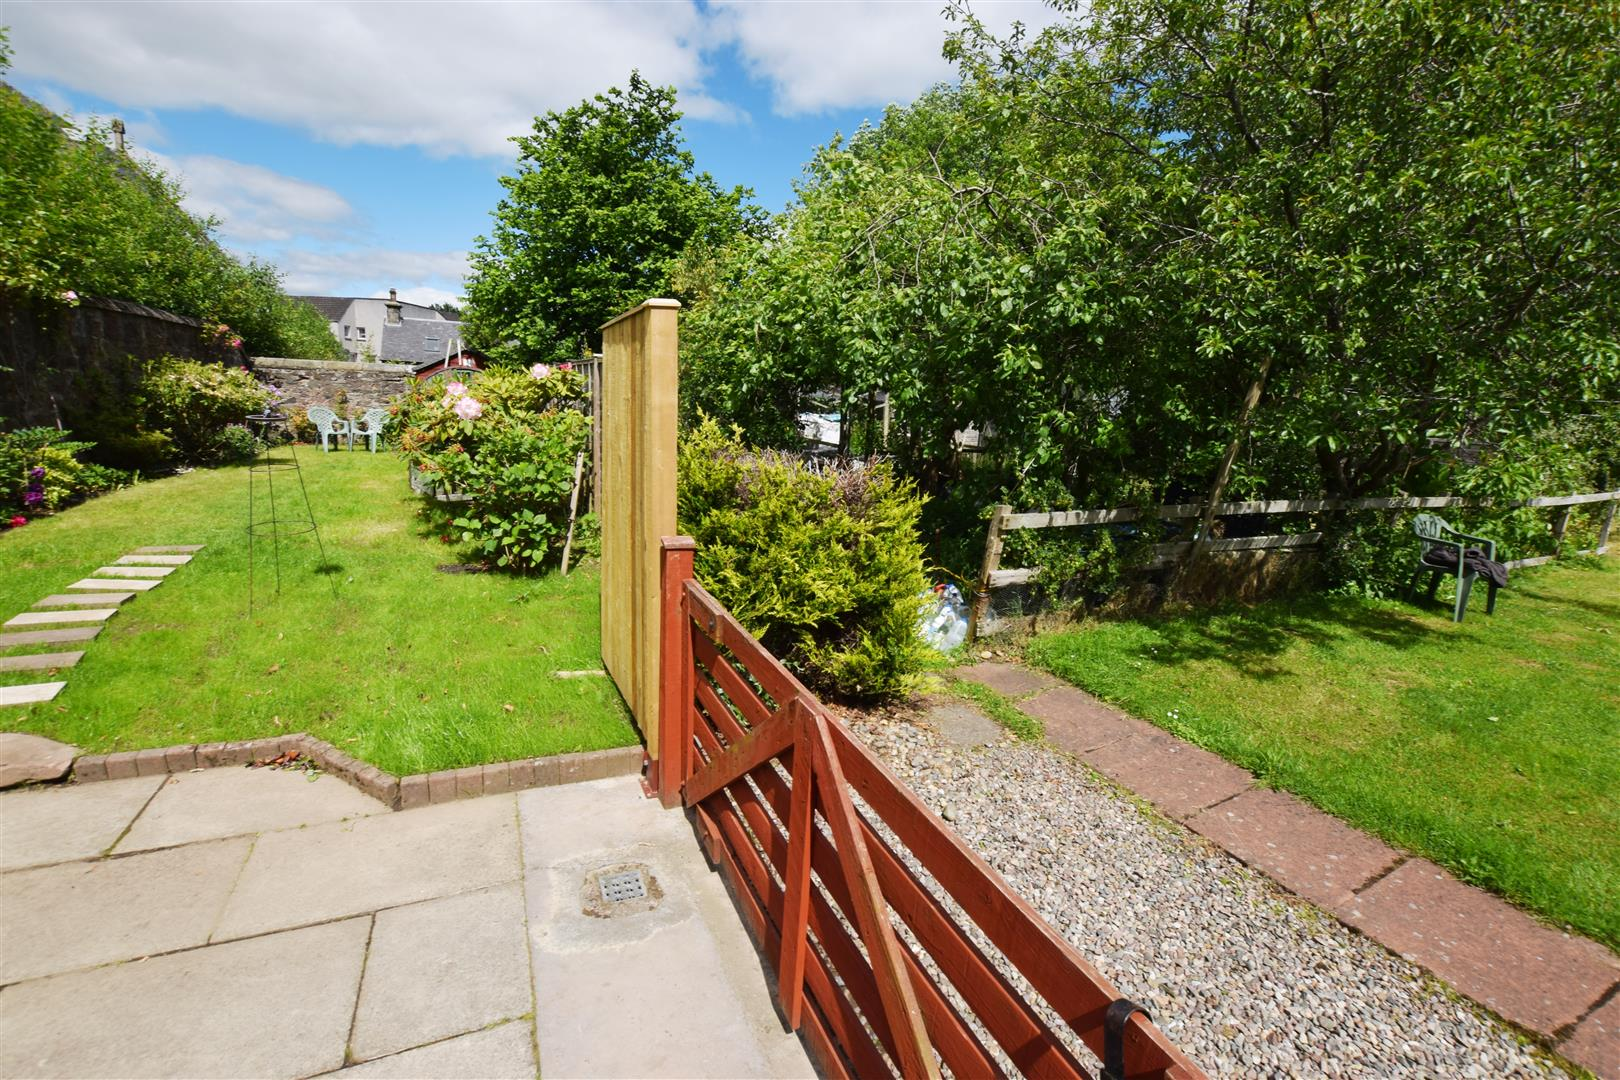 40B, William Street, Blairgowrie, Perthshire, PH10 6BH, UK